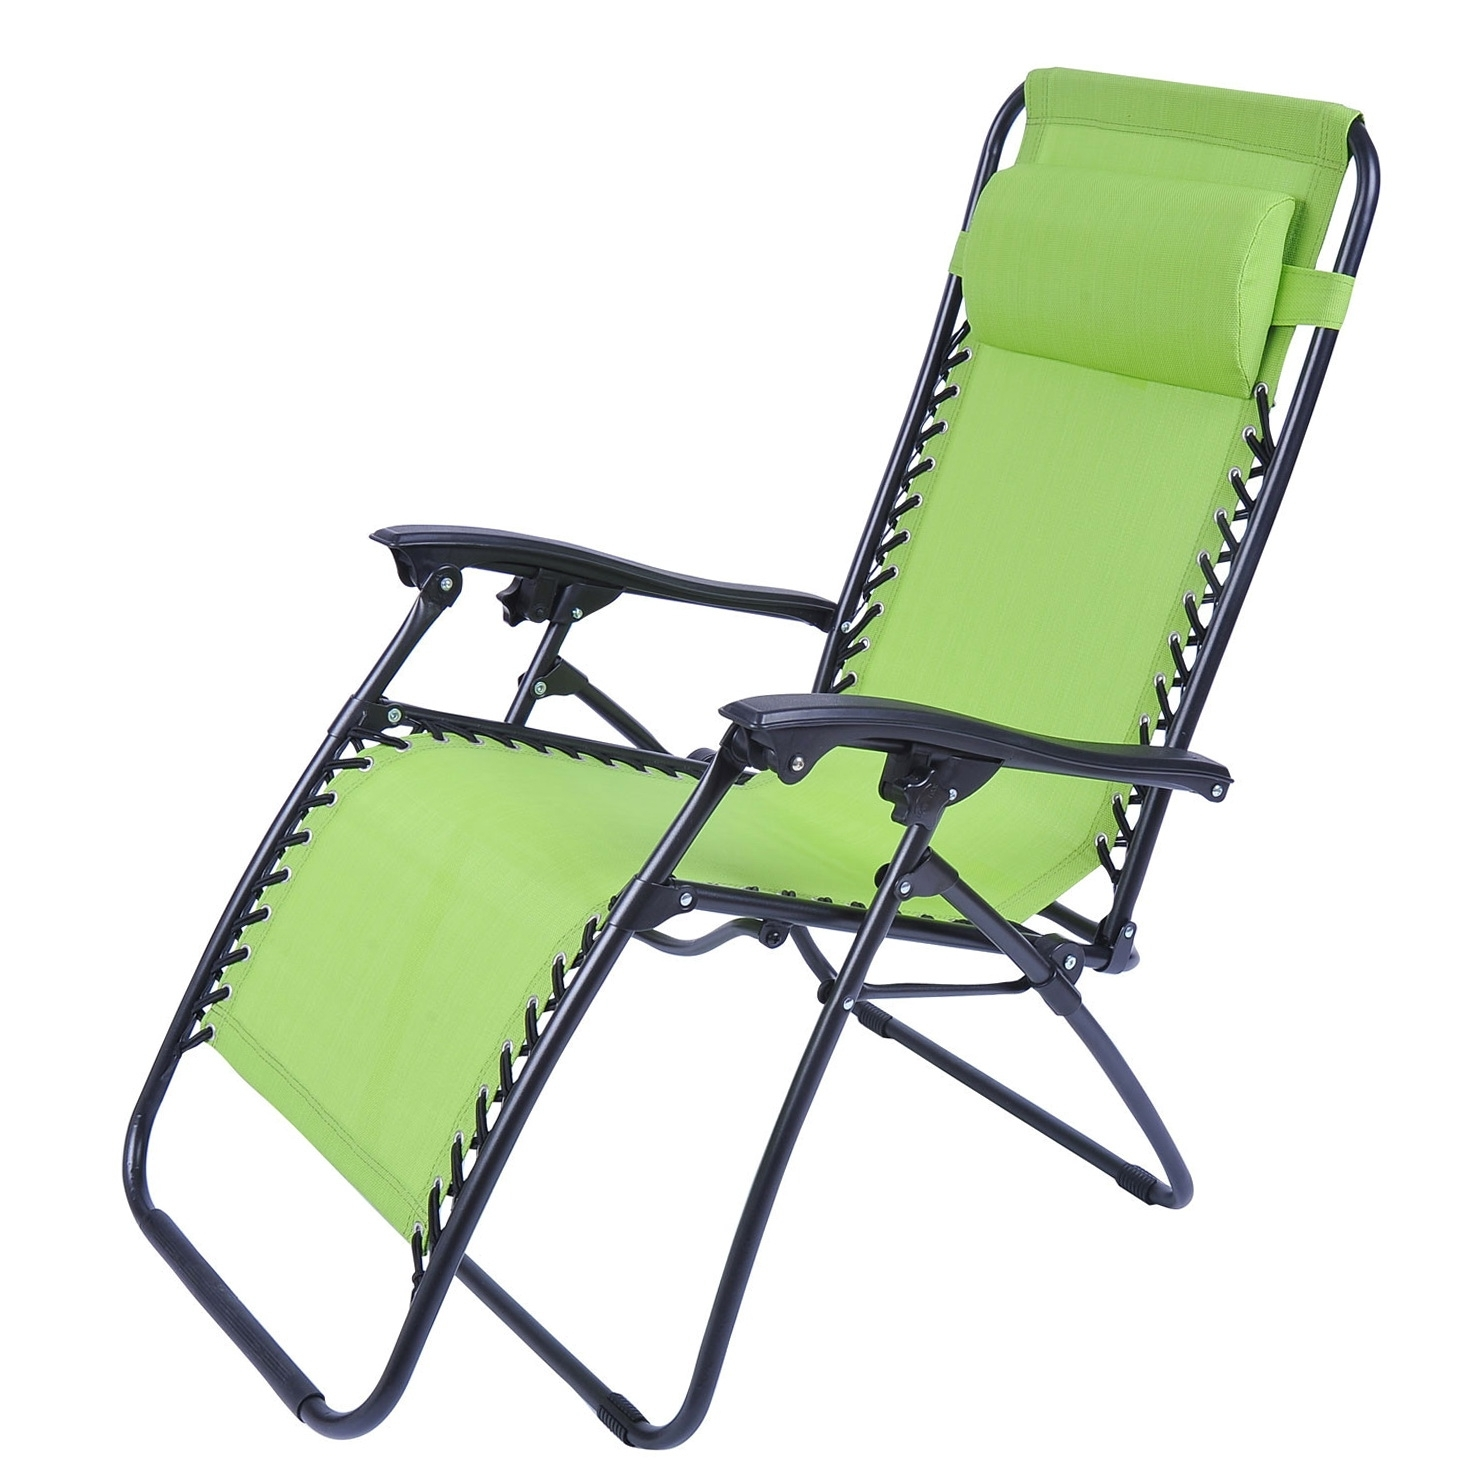 Recent Foldable Chaise Lounges Intended For Folding Chaise Lounge Chair Patio Outdoor Pool Beach Lawn Recliner (View 15 of 15)